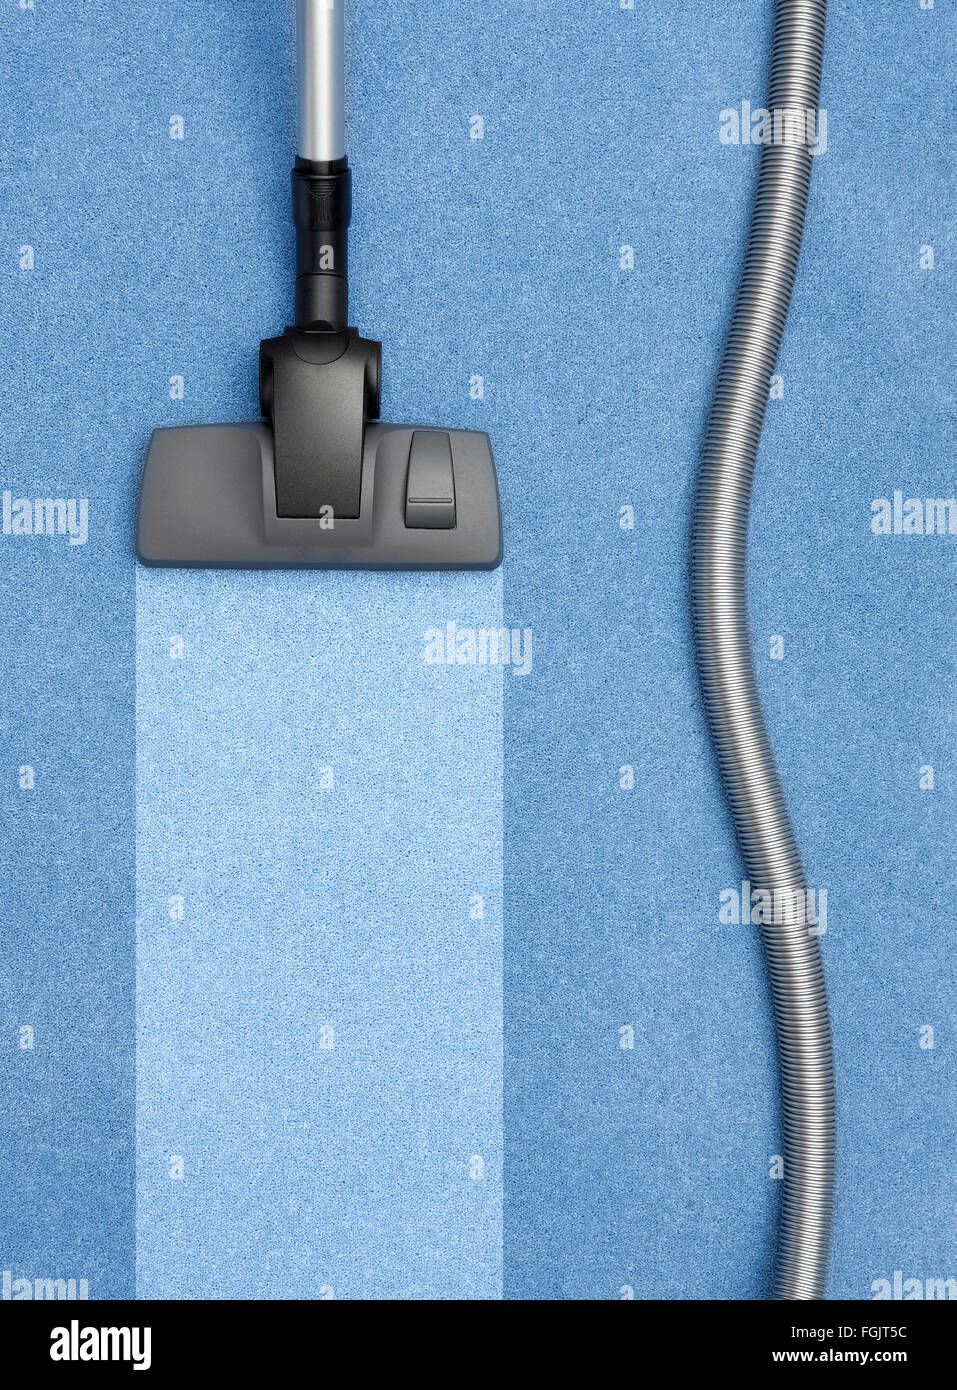 Vacuum Cleaner cleaning the carpet - Stock Image